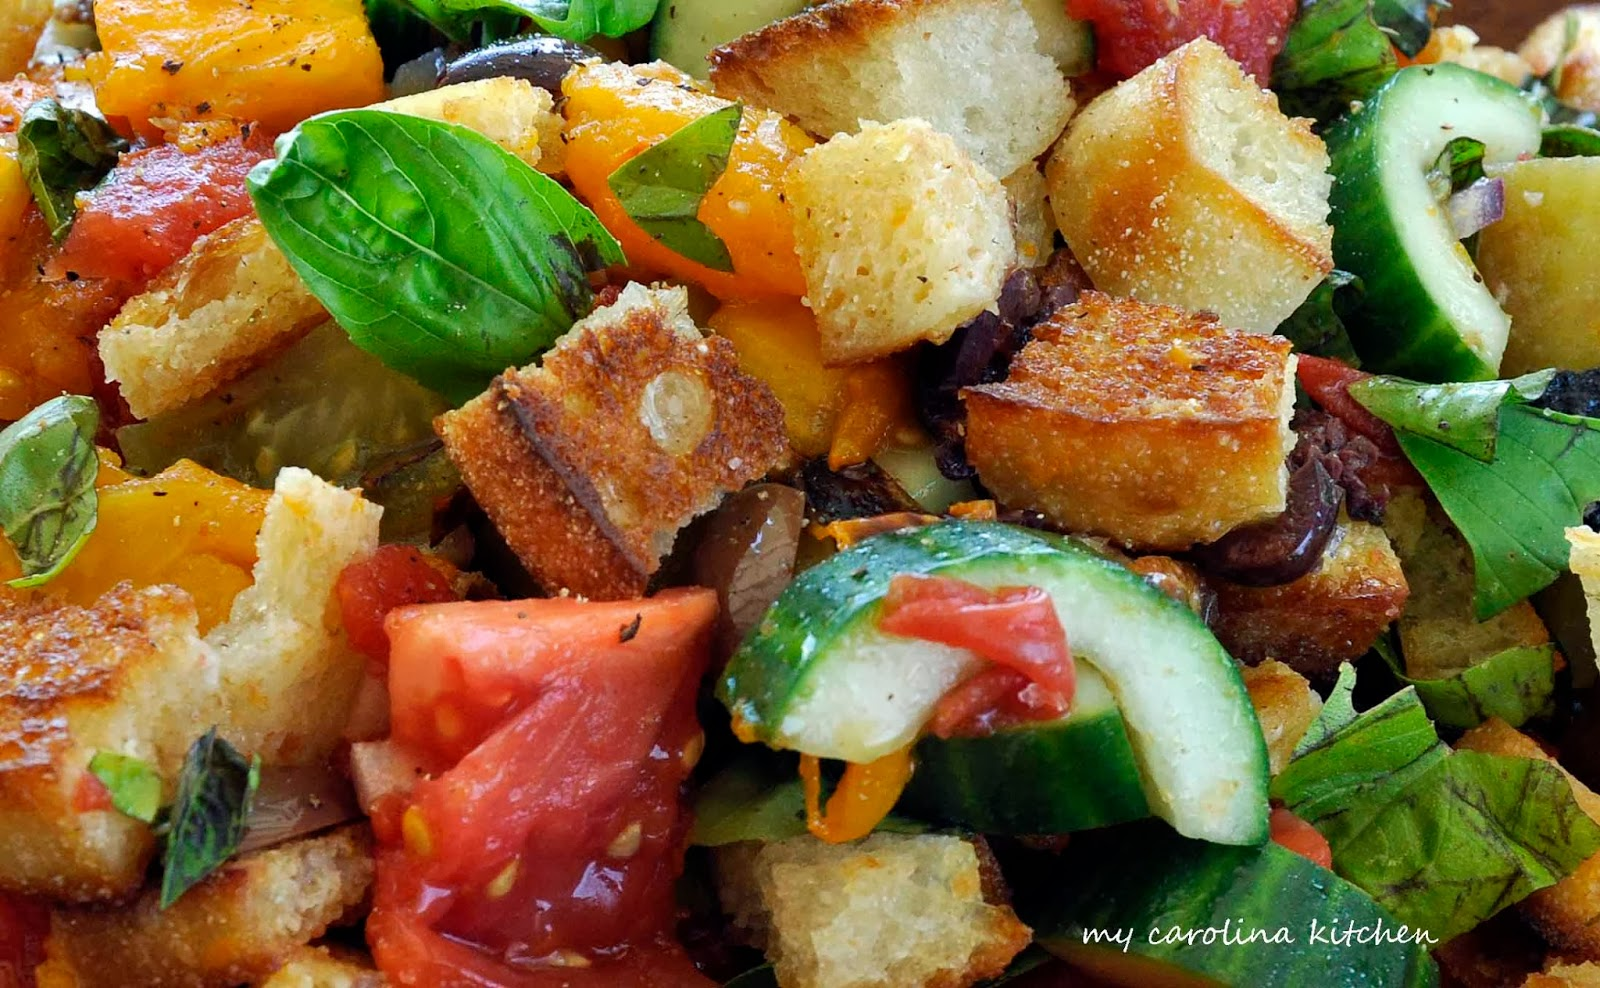 ... : Bread Salad with Charred Tomatoes, Cucumbers & Kalamata Olives